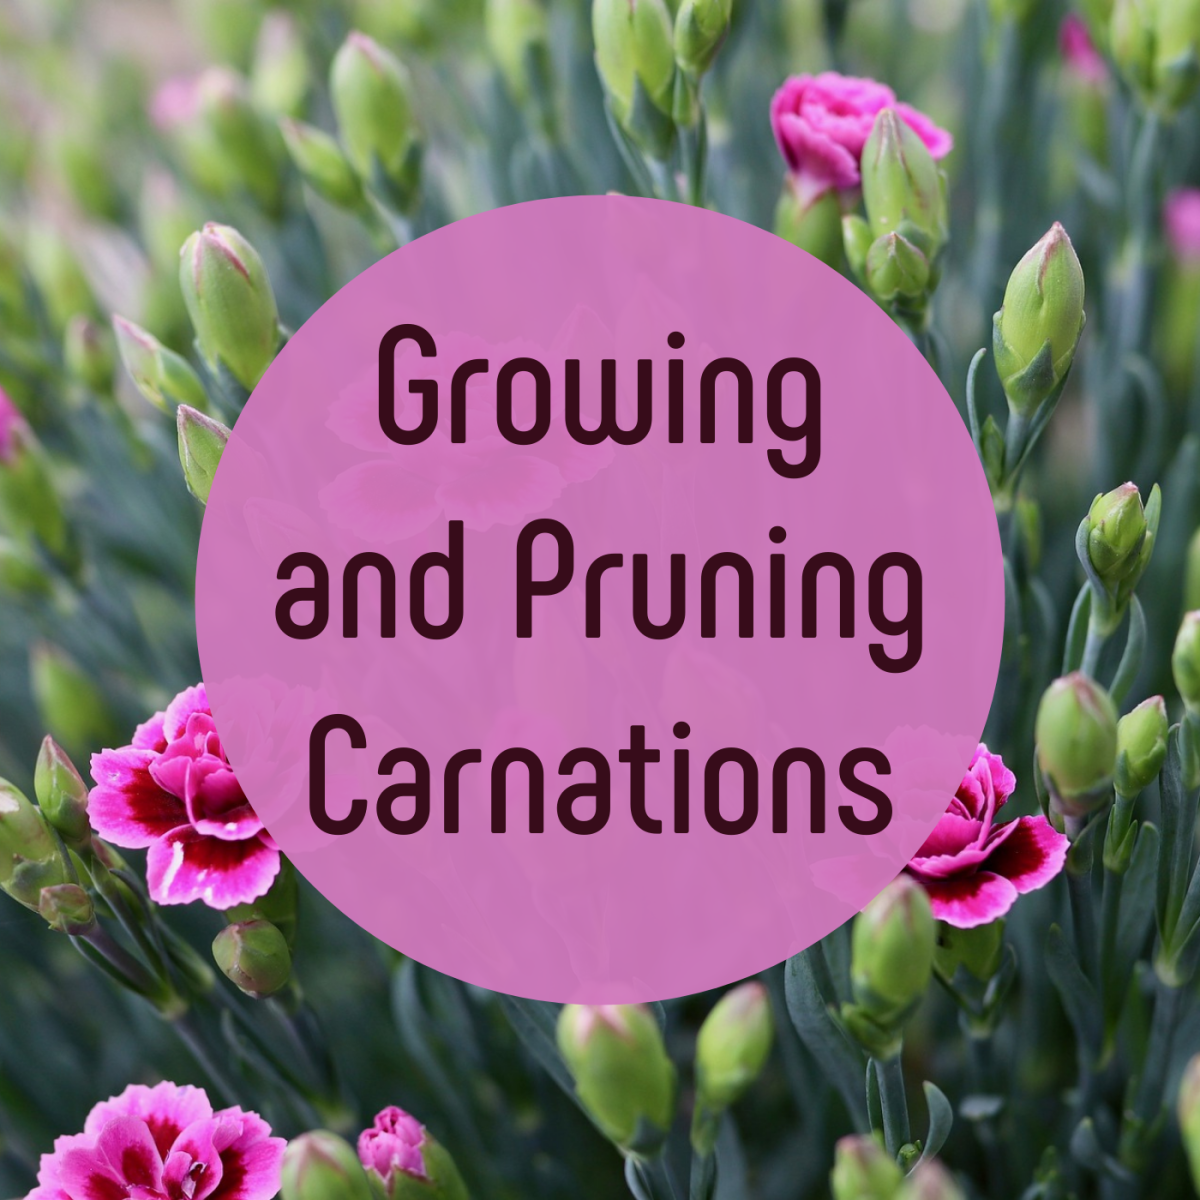 Learn how to grow and care for carnations in your garden, whether you start them from cuttings or seeds.